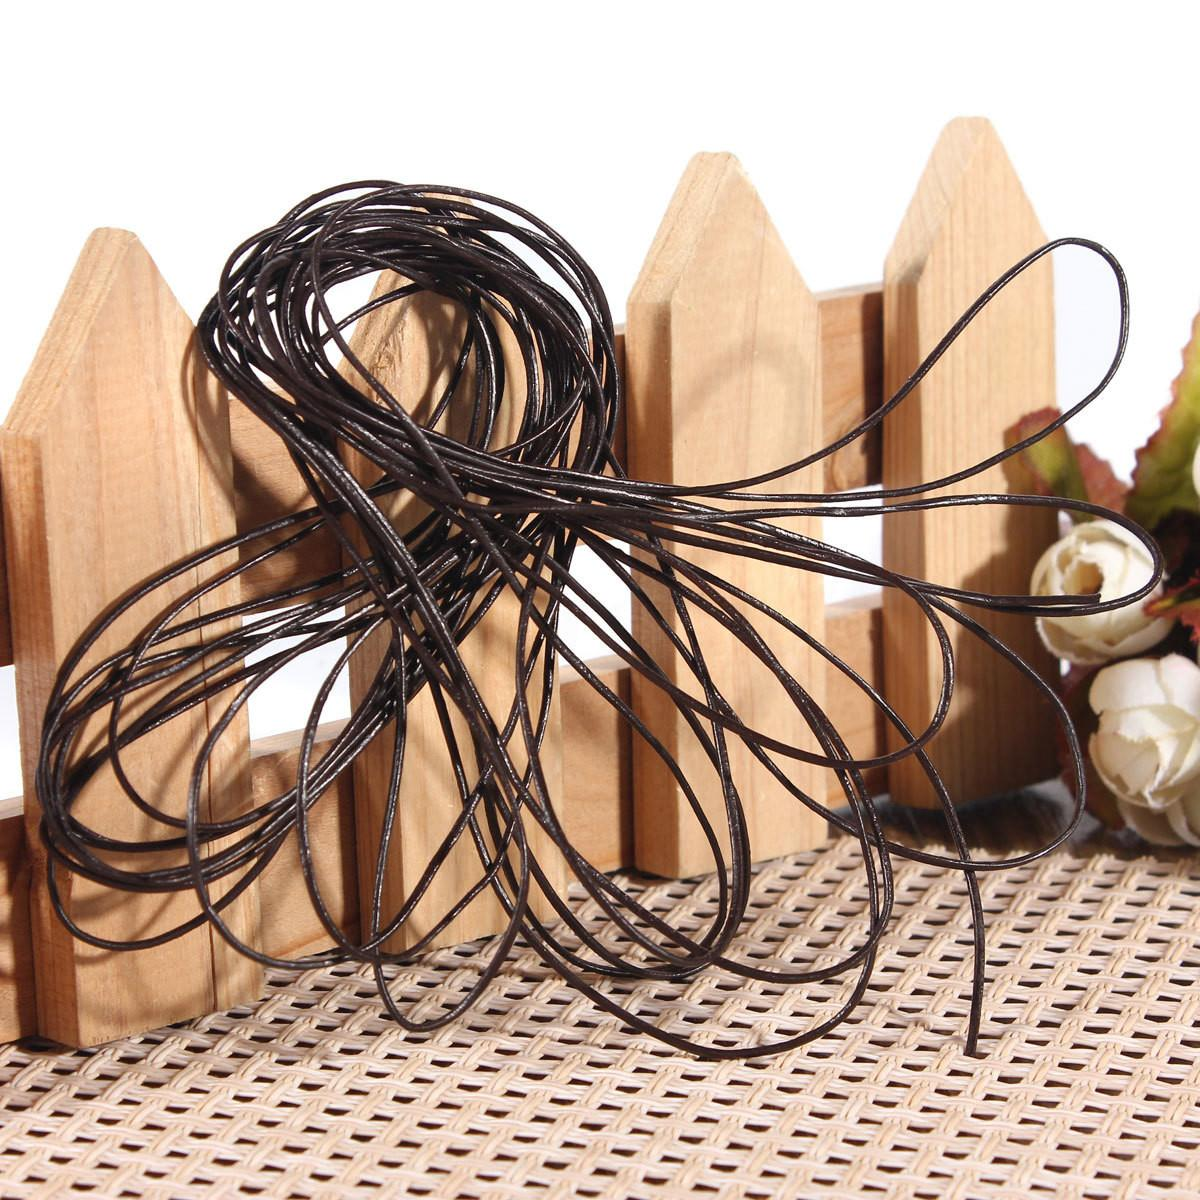 4mm Leather Thong Cord Reel Roll Suede Craft String